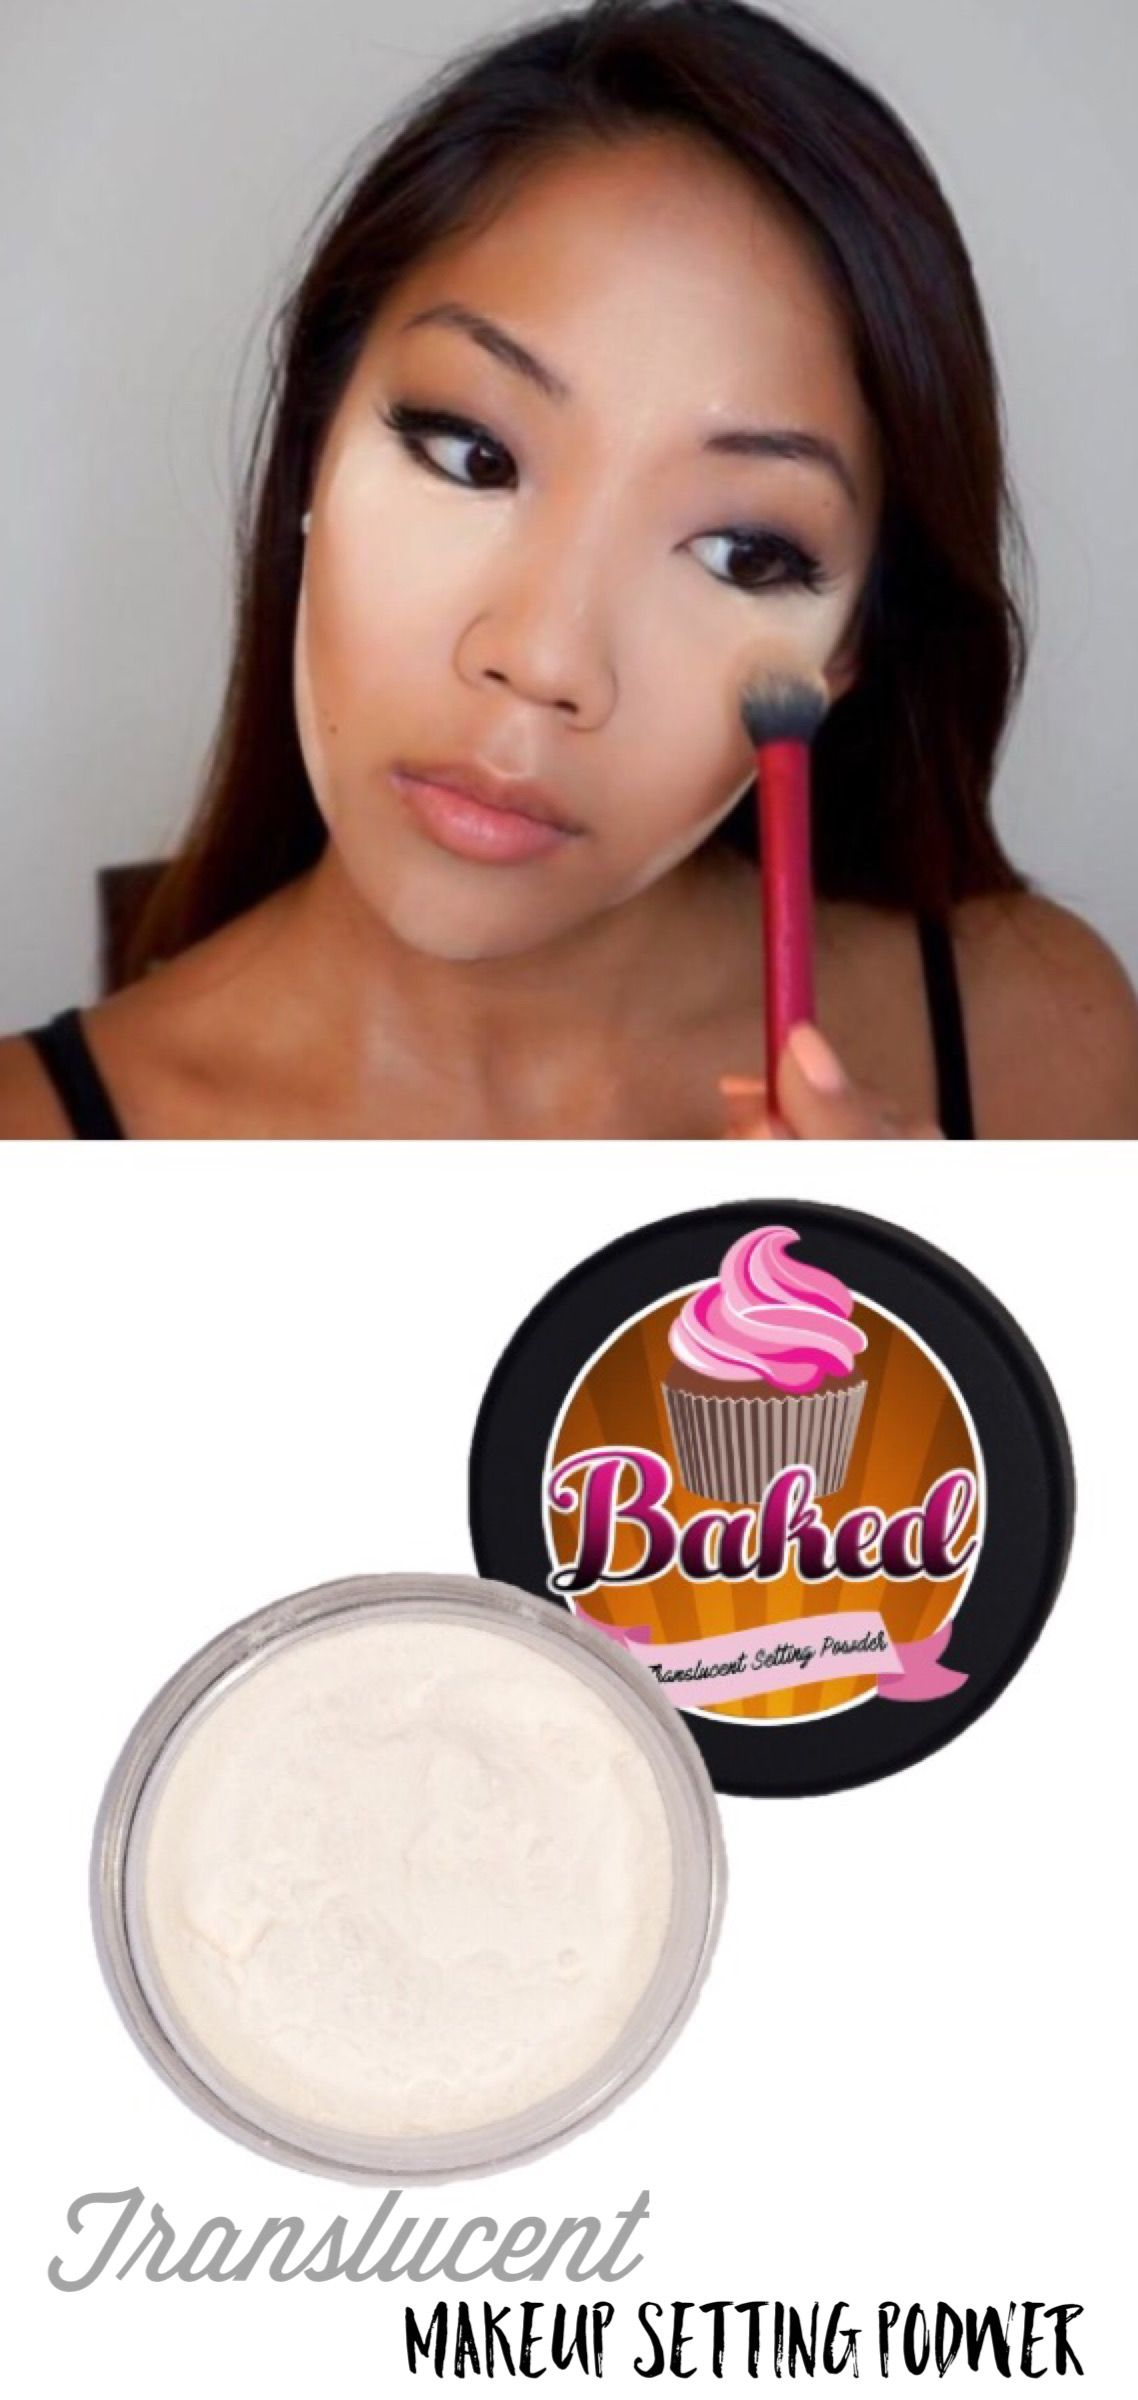 The best makeup setting powder for the best bake⭐ www